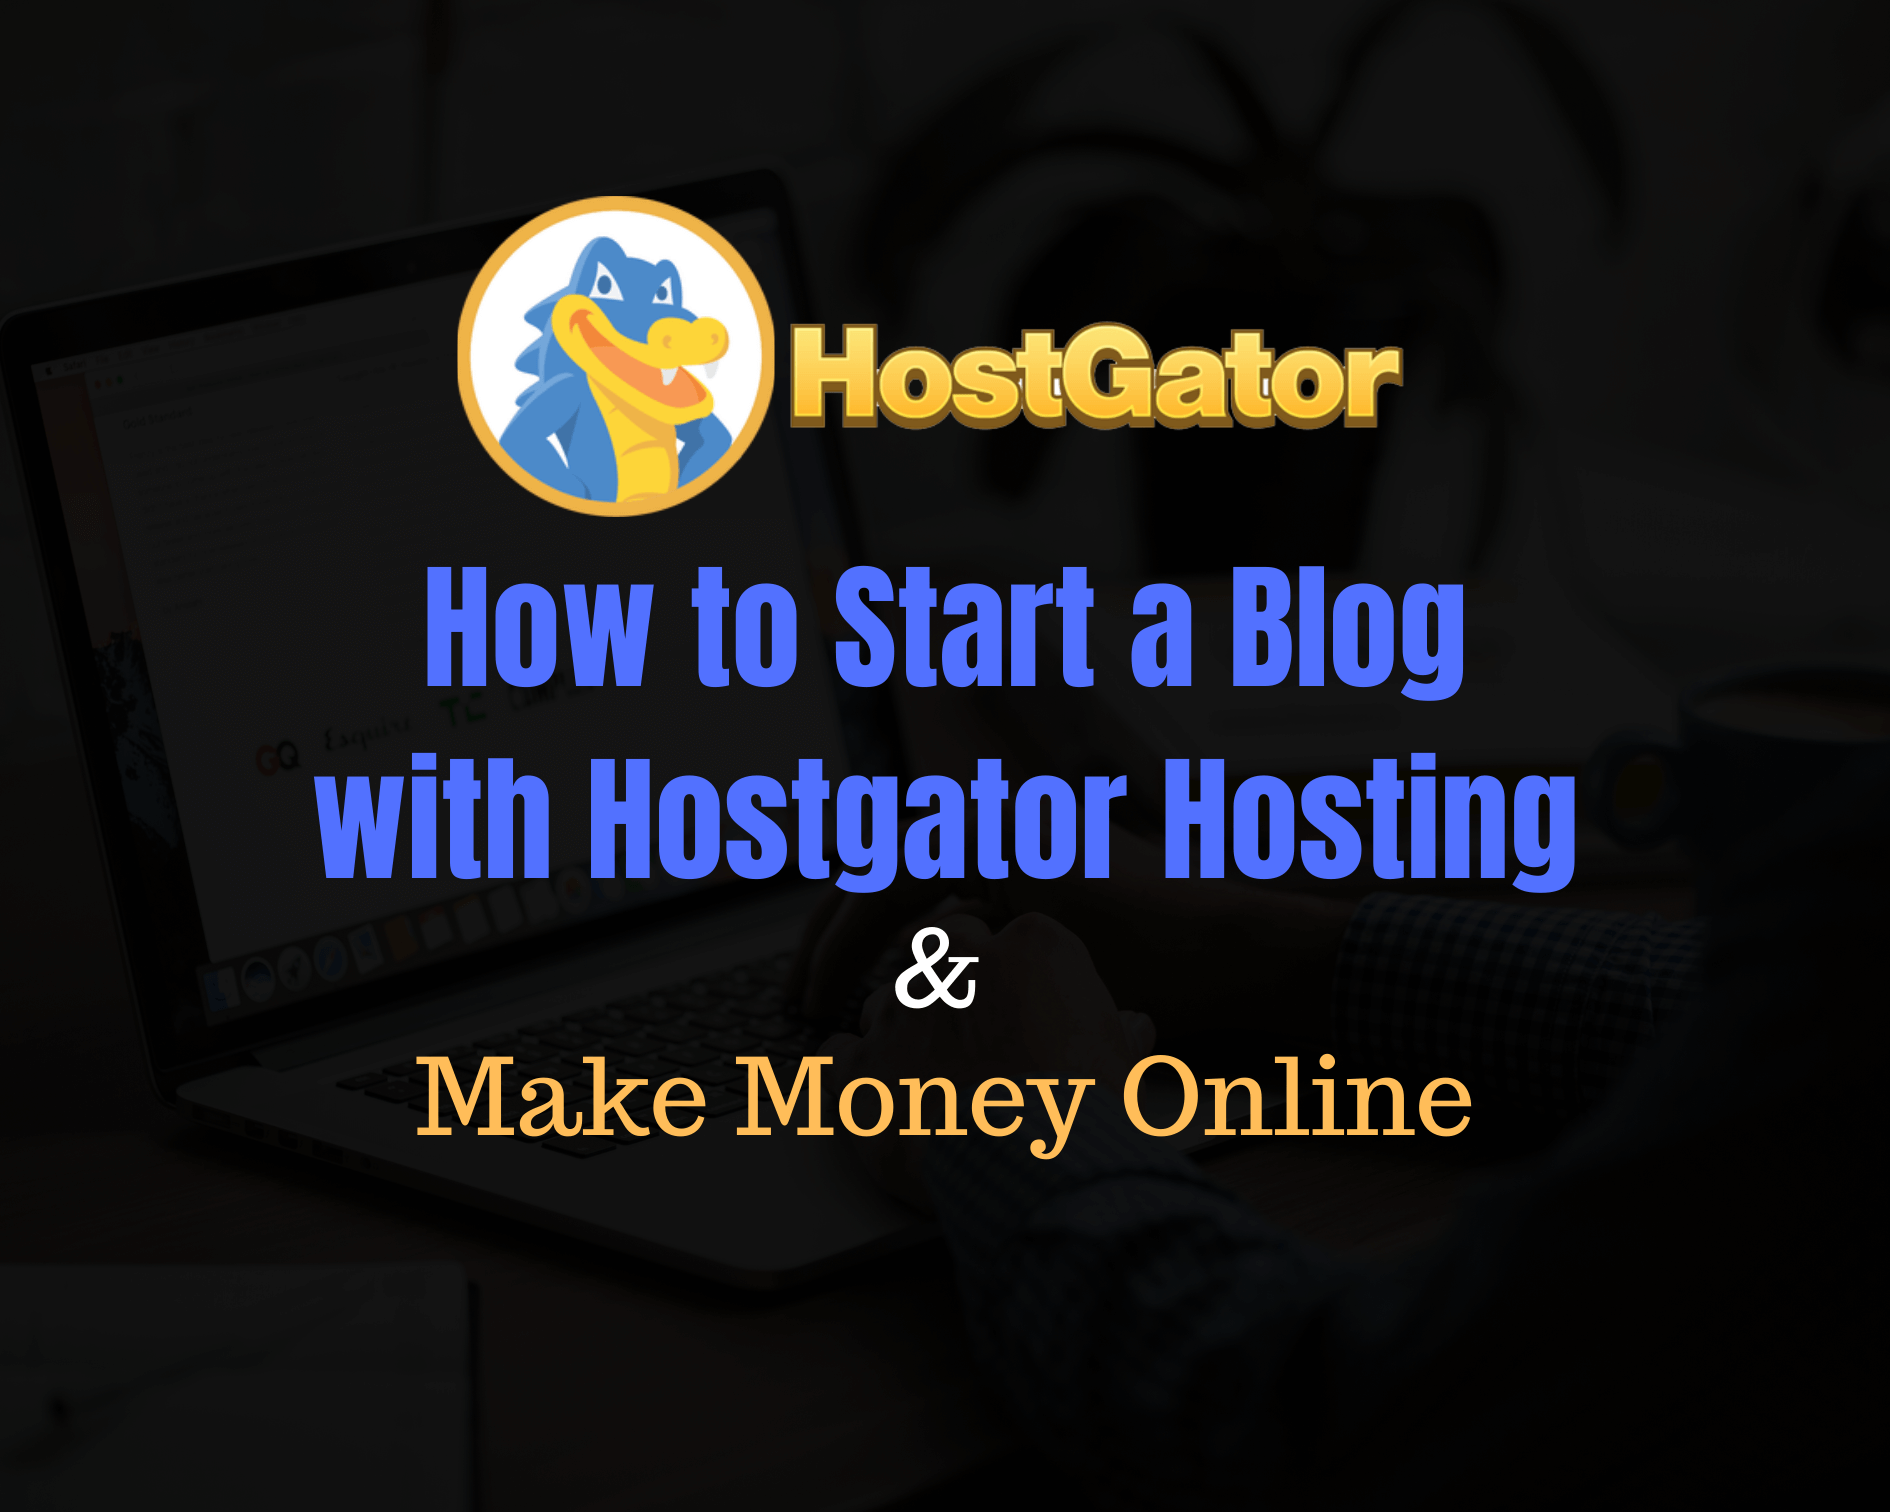 How to Start a Blog with Hostgator Hosting in 2021